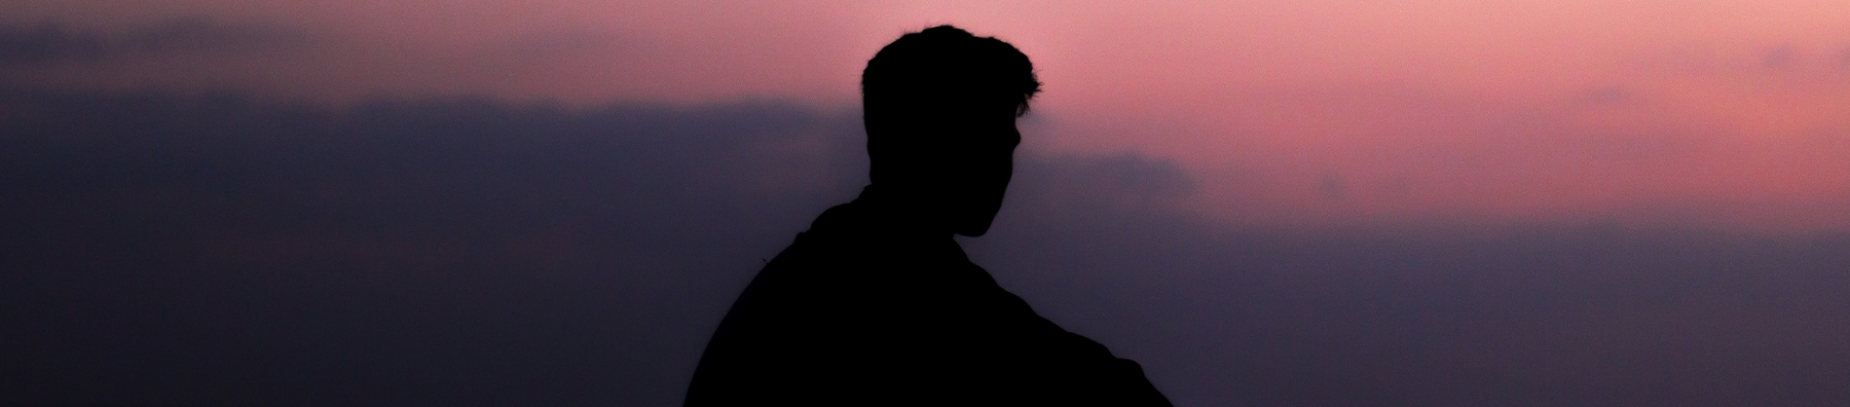 A silhouette  of a man looking towards a sunset sky